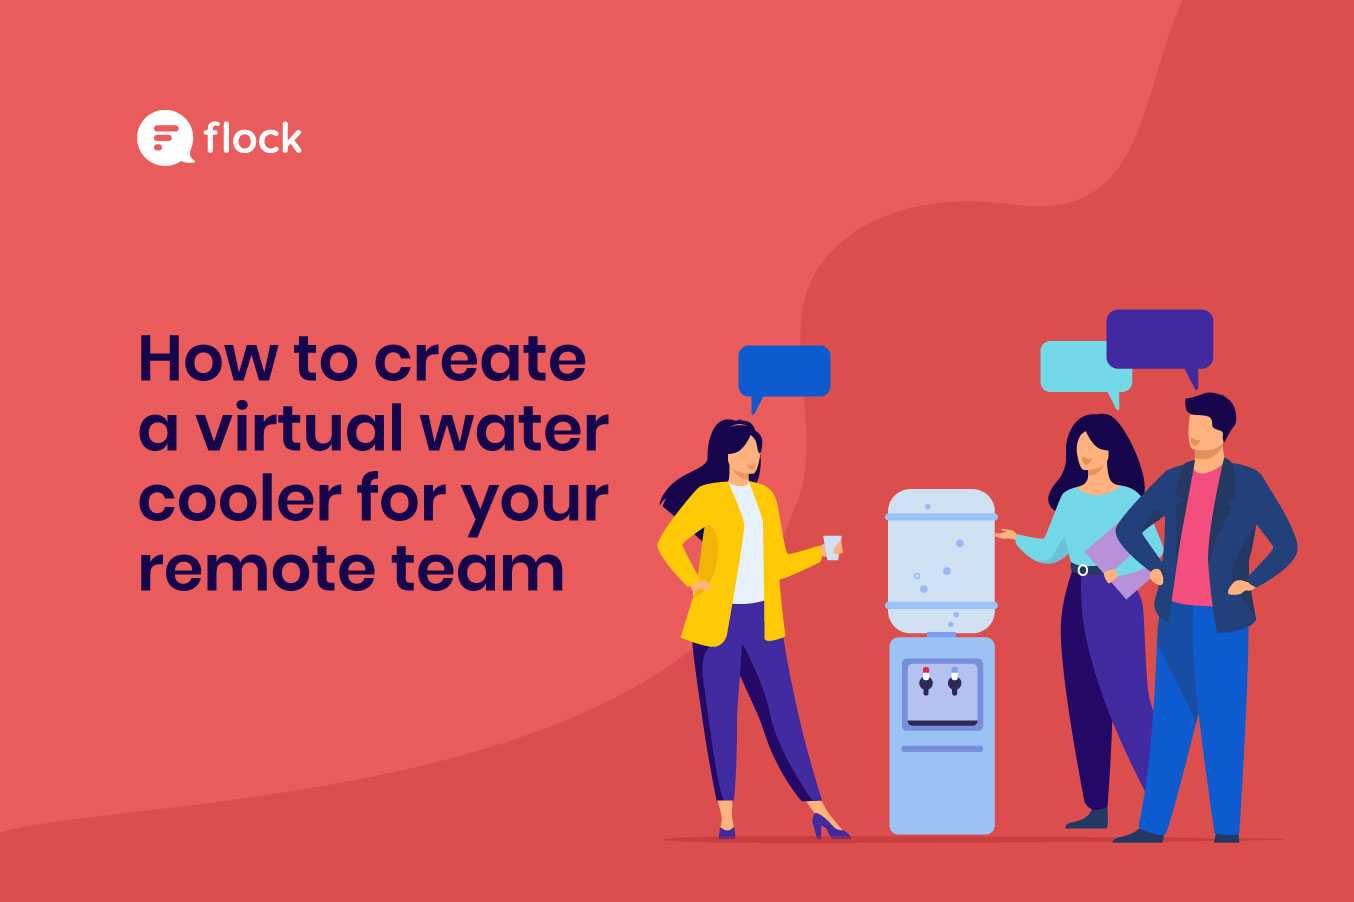 Creating virtual water coolers for remote teams